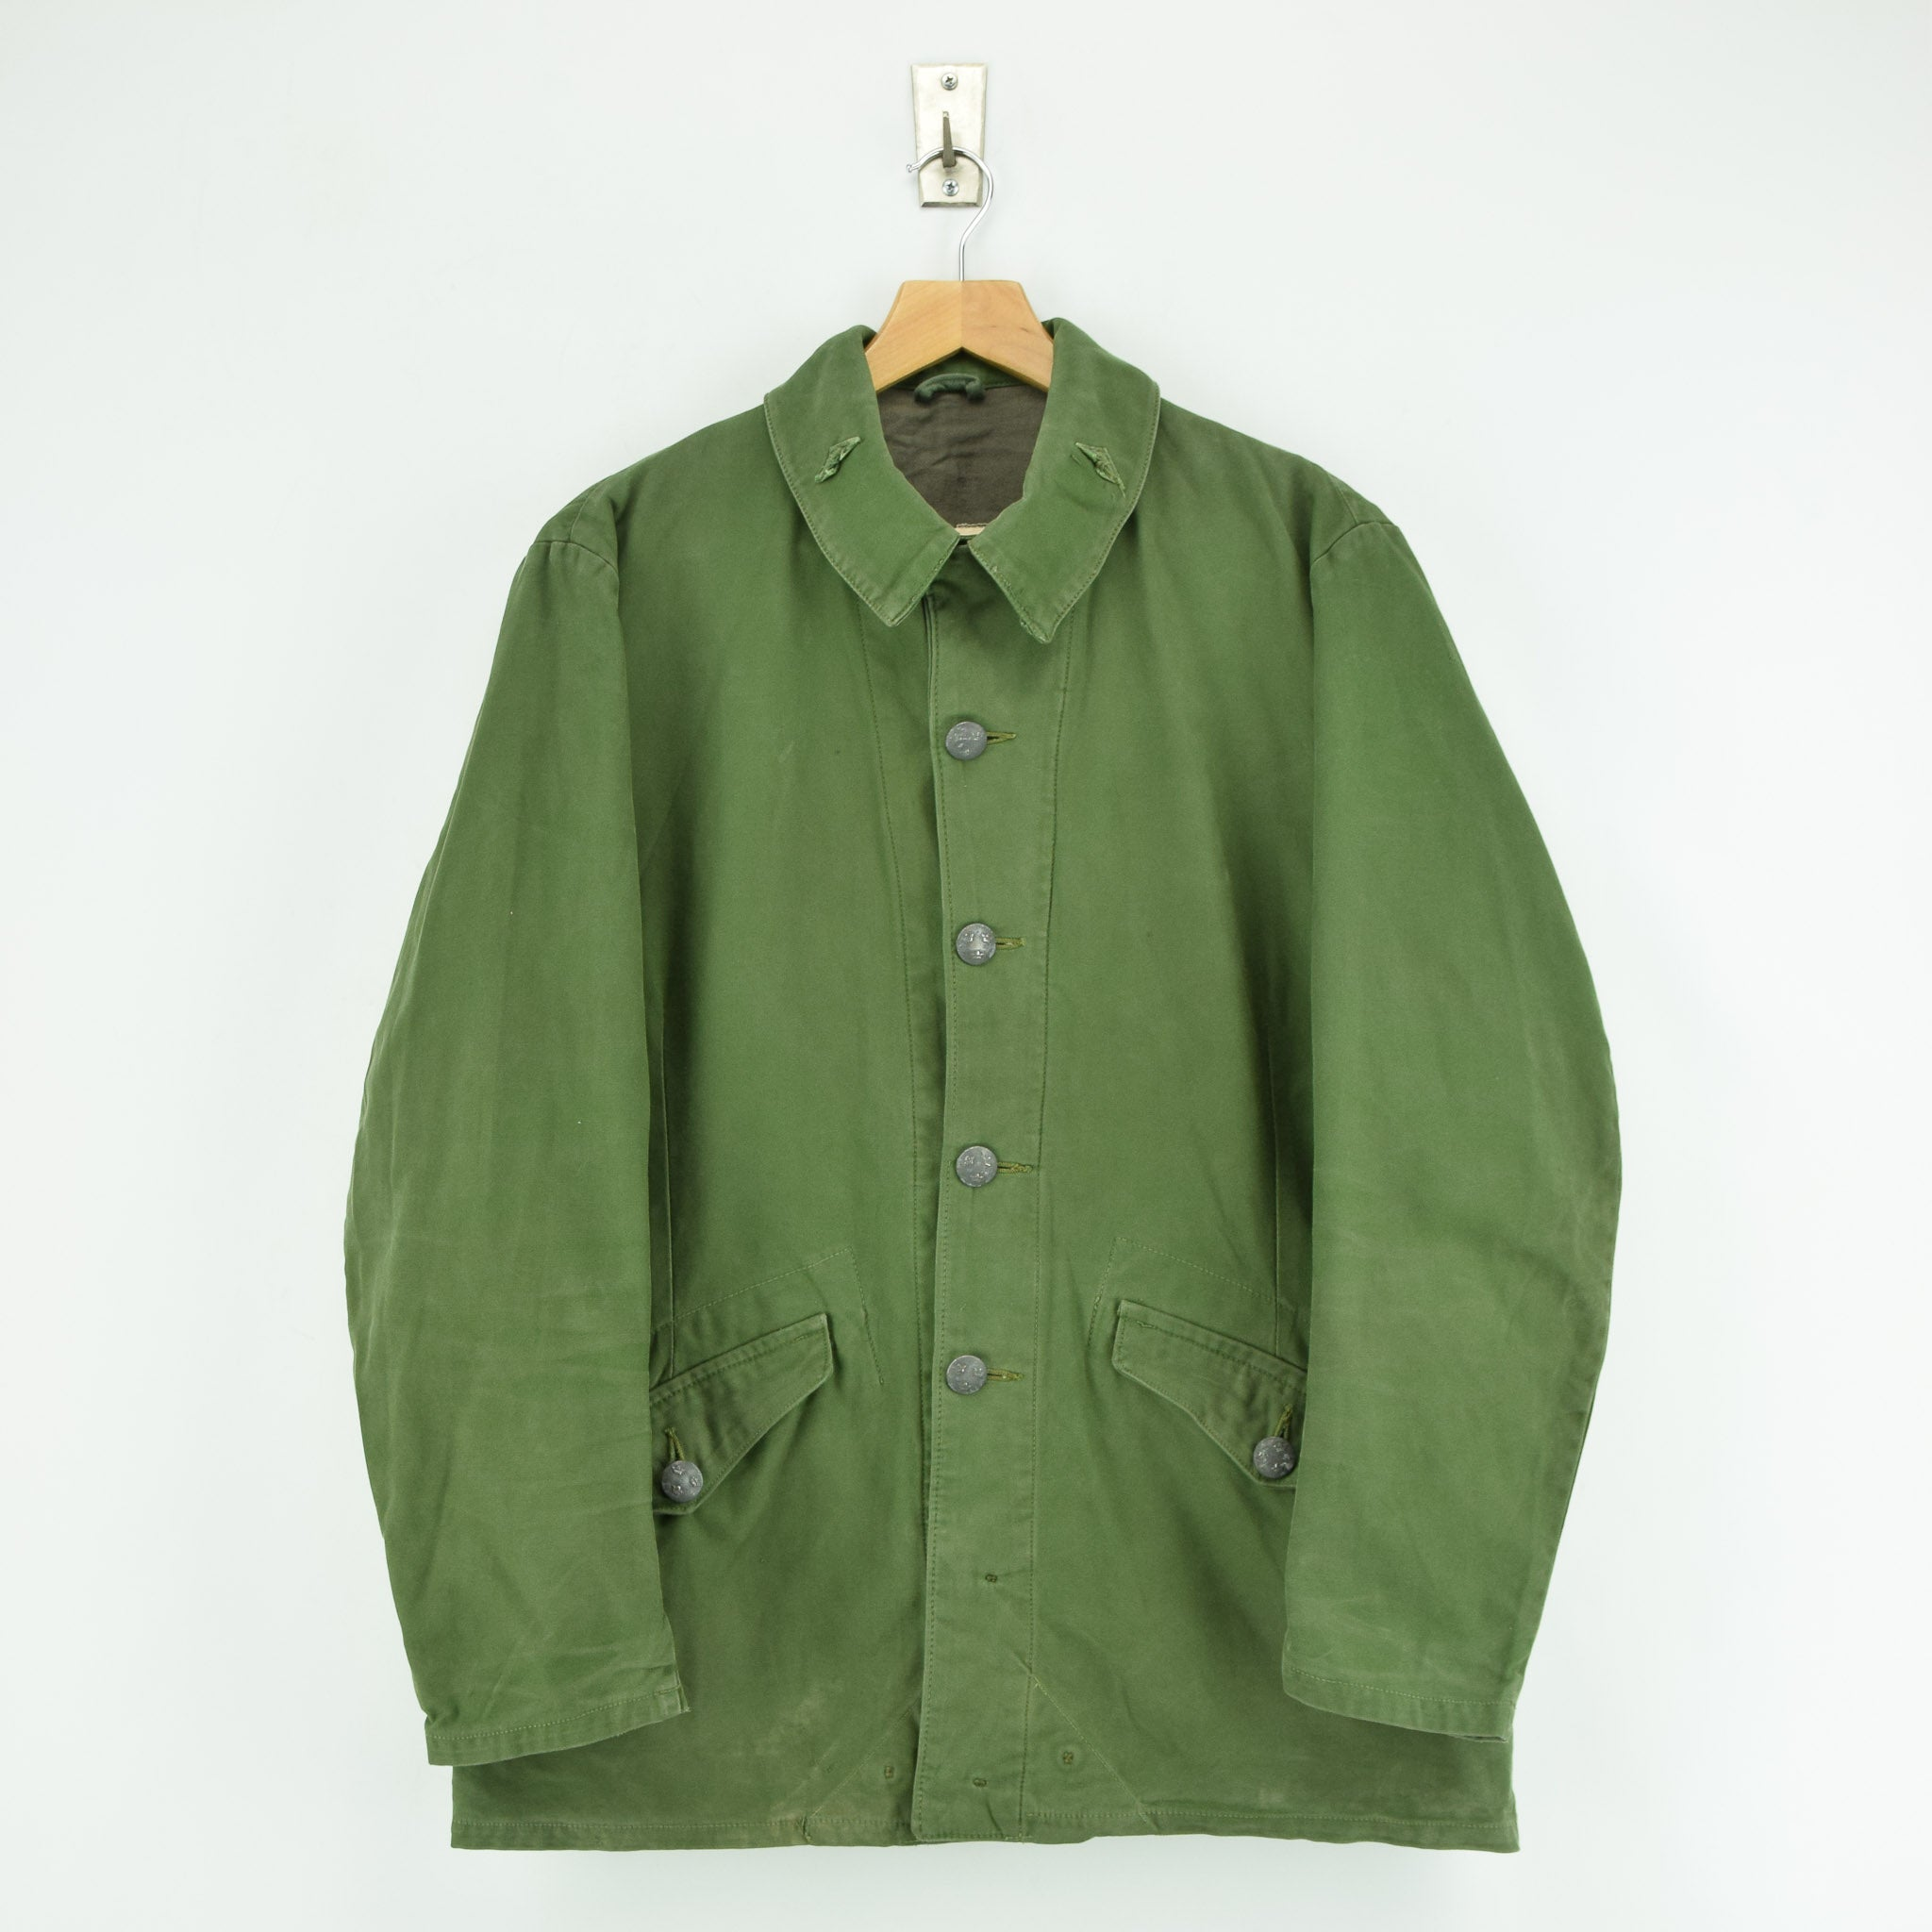 Vintage Well Worn Swedish M59 Field Military Olive Green Worker Style Jacket M front